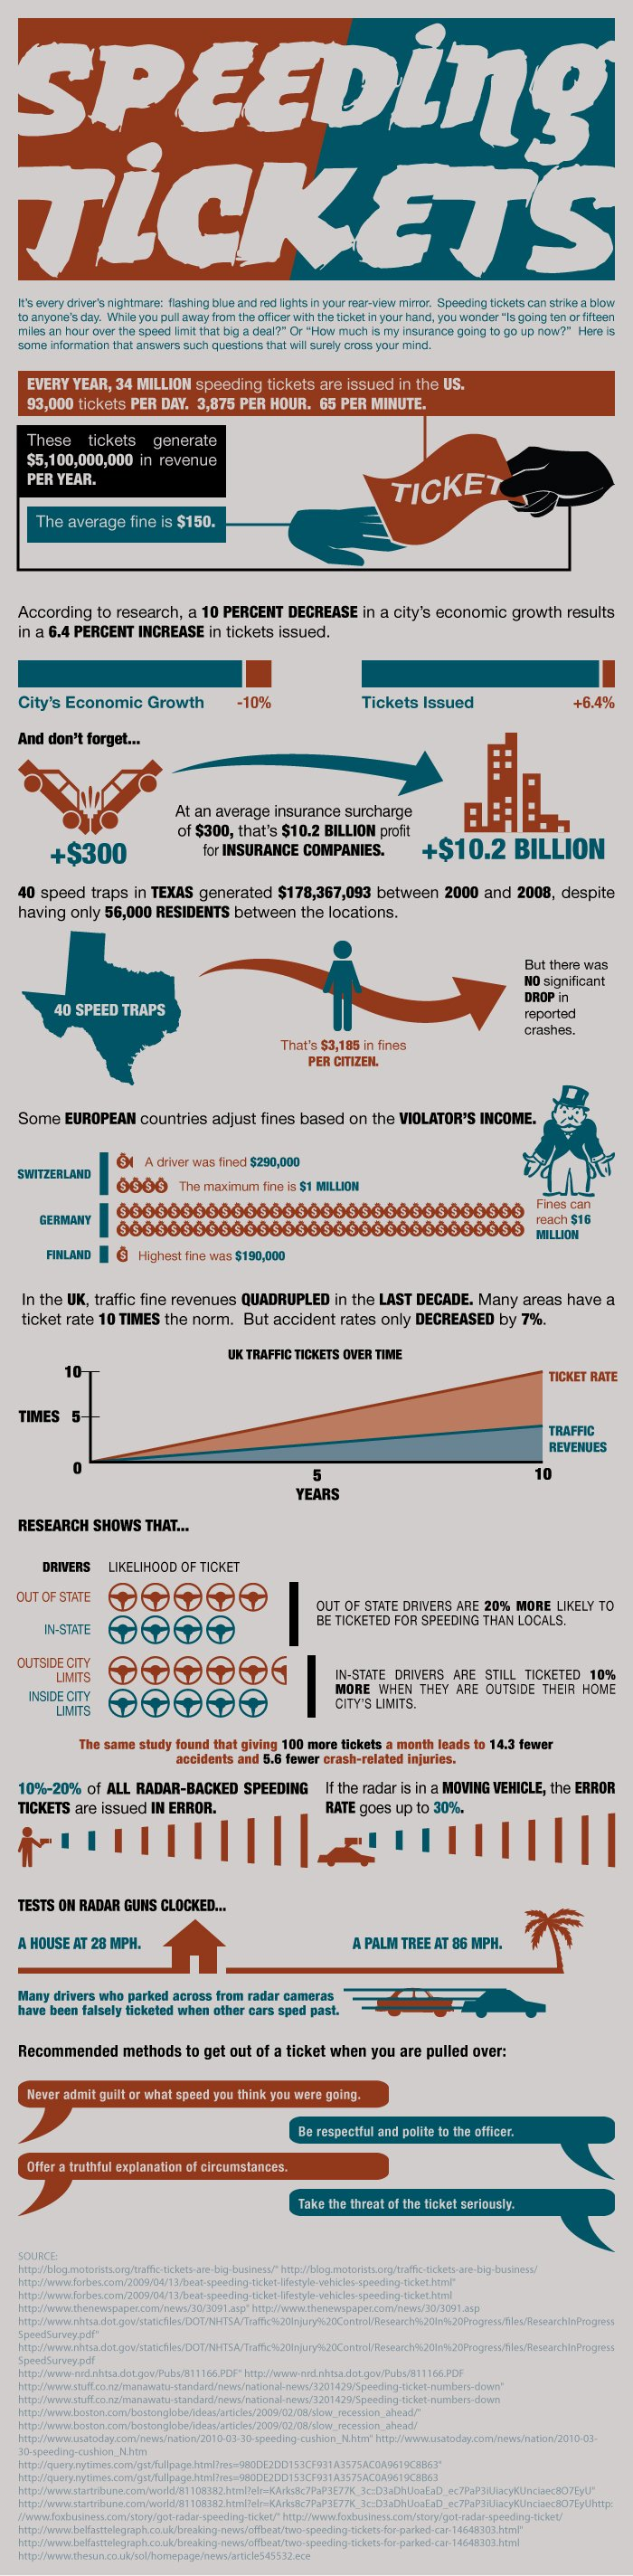 Miami Speeding Ticket Infographic